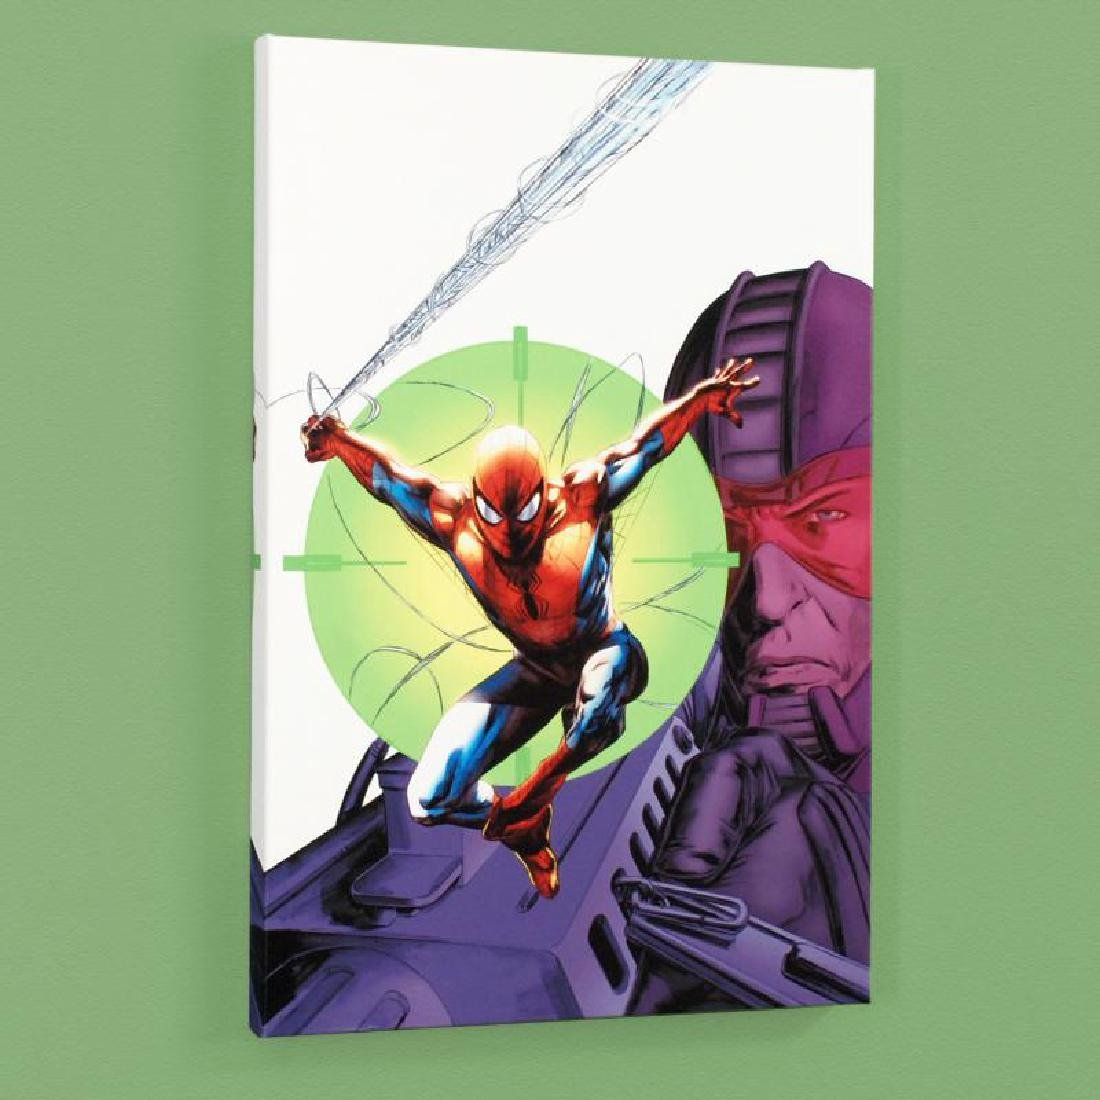 Heroes For Hire #6 Limited Edition Giclee on Canvas by